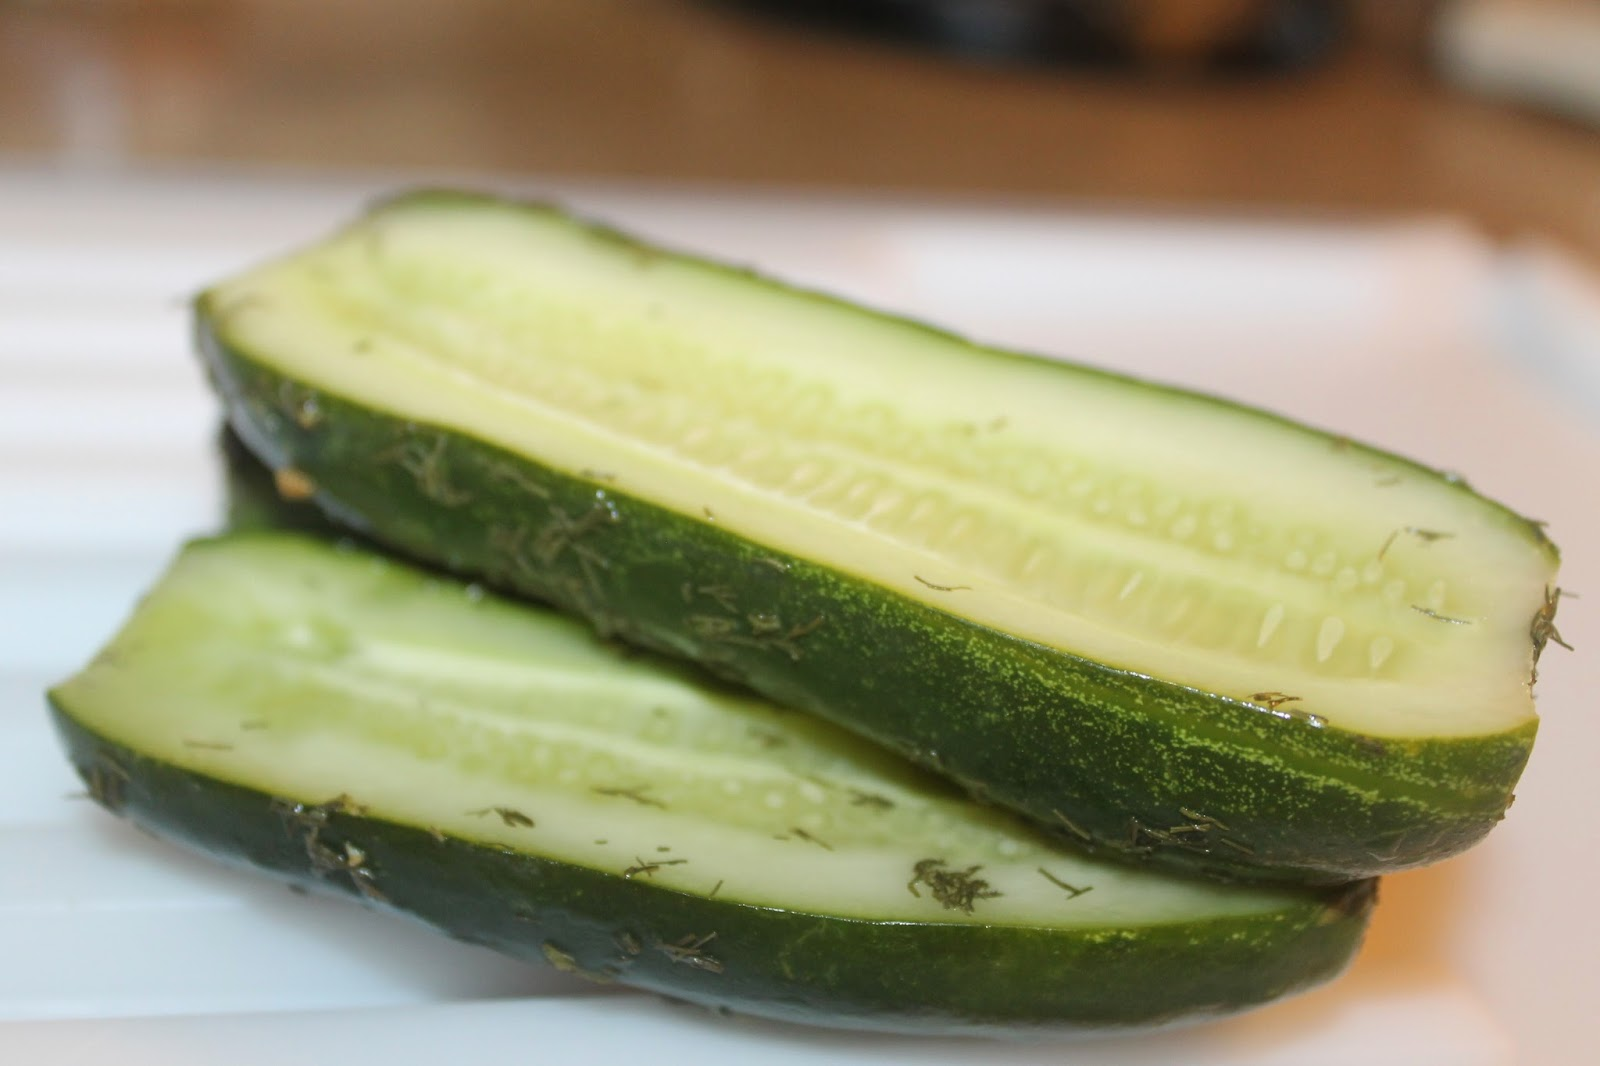 Cooking With Mary and Friends: Easy Refrigerator Dill Pickles